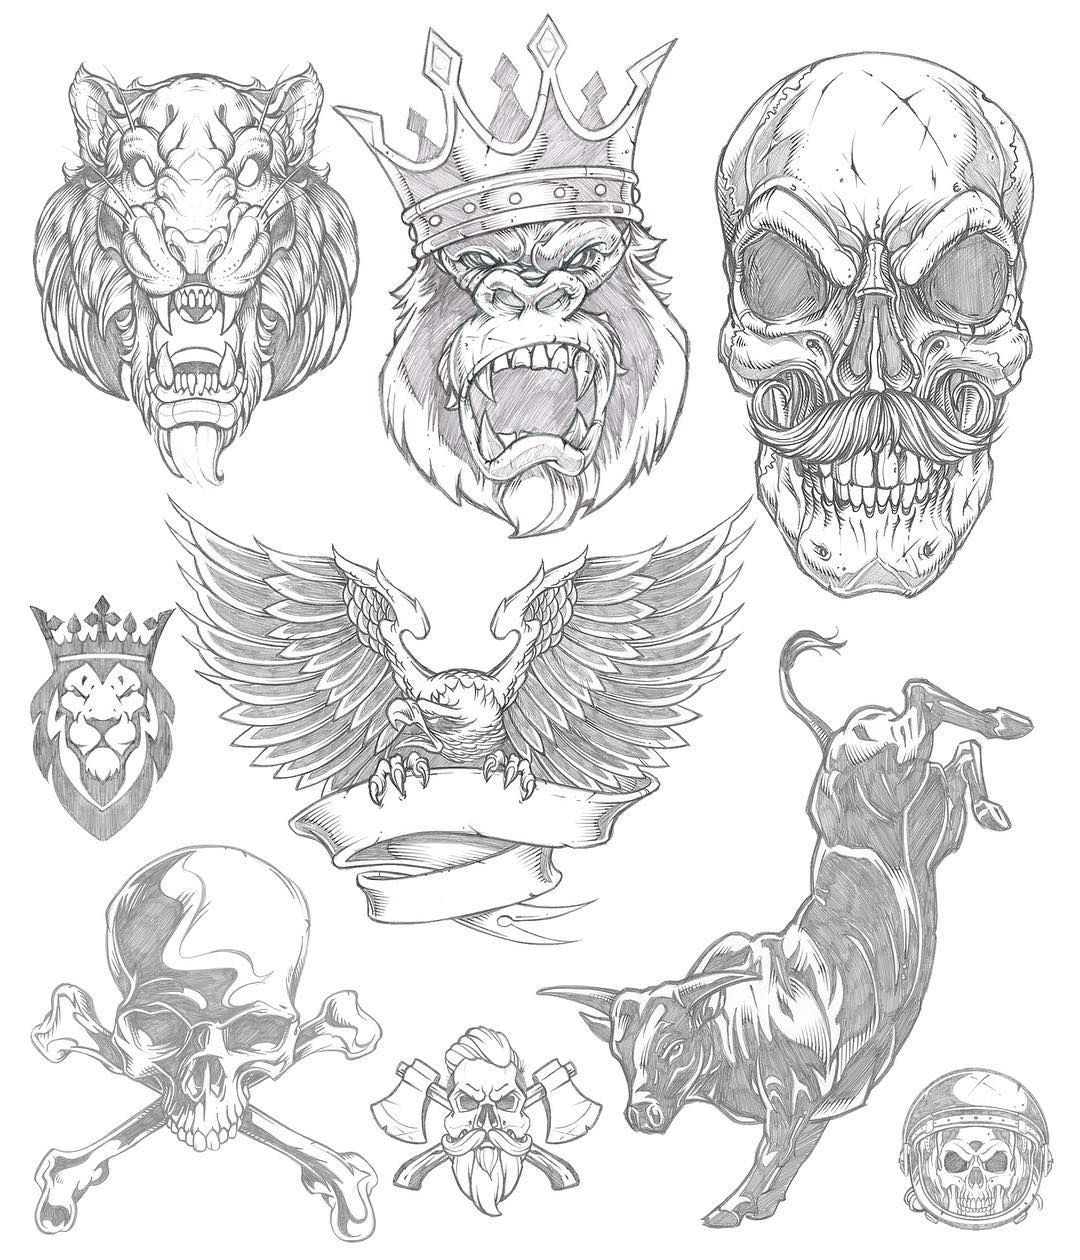 Part1: I rarely look back. My insatiable appetite for discovery and the ongoing battle within for growth is grueling. It forces this aggressive forward momentum that leaves little room for reflection or appreciation. Doing a little organizing this morning of illustrative work. #pencil #sketch #tiger #monkey #gorilla #skull #eagle #bull #rodeo #NFR #alwaysoutnumbered #illustration #drawing #studiolife #art #sweyda